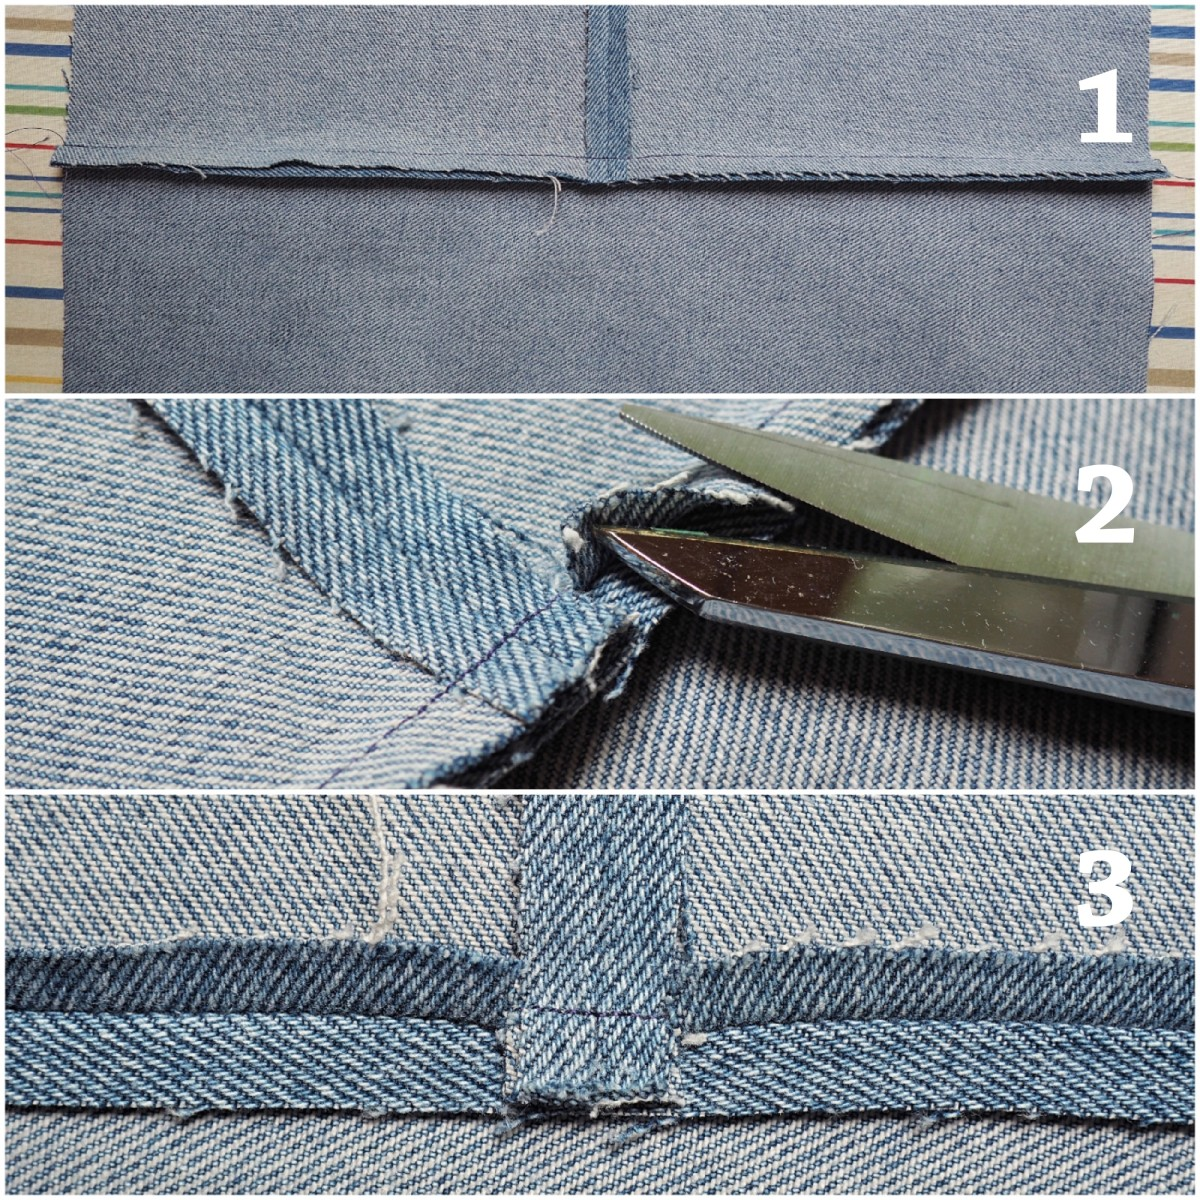 How to press the seams open around the seam to avoid bulk.